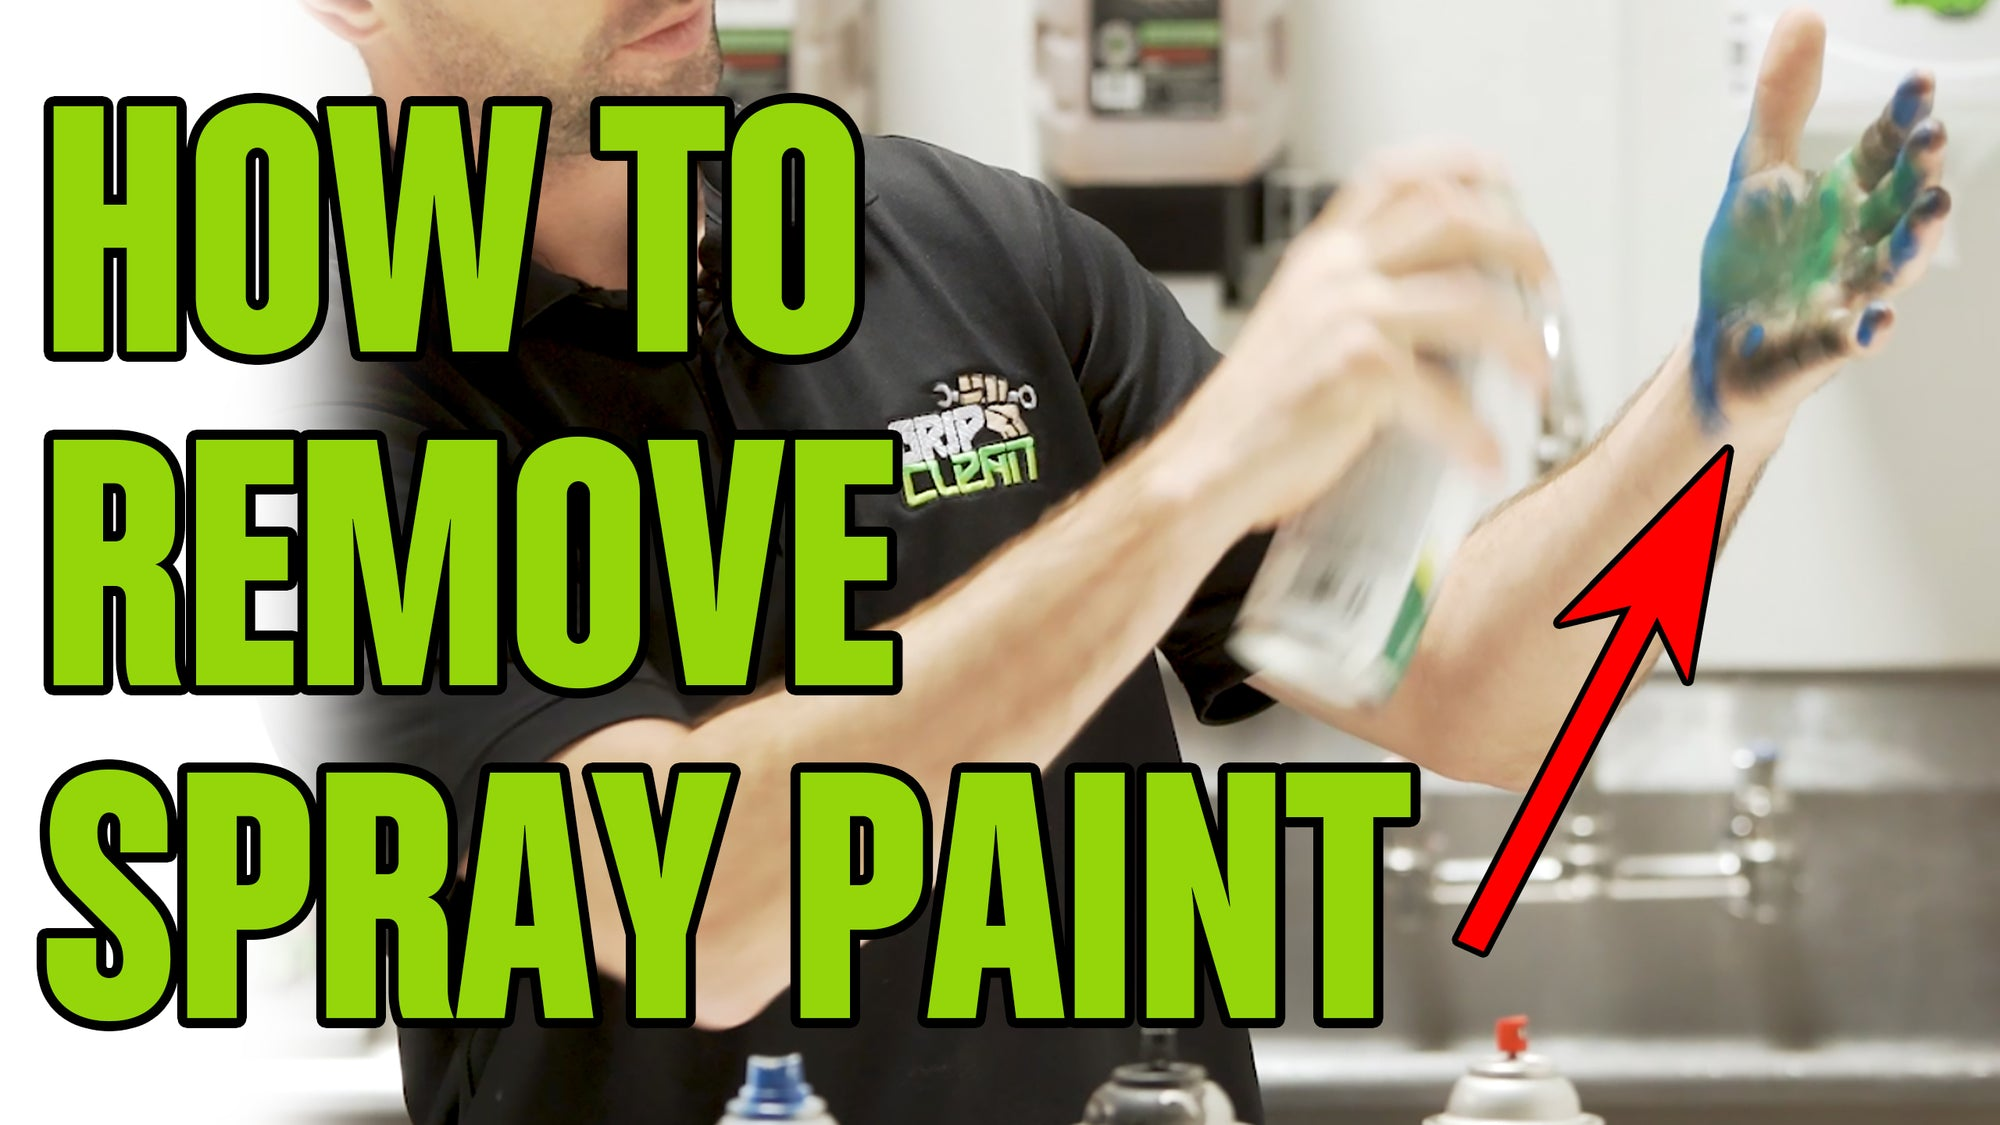 HOW TO REMOVE: Spray Paint From Your hands